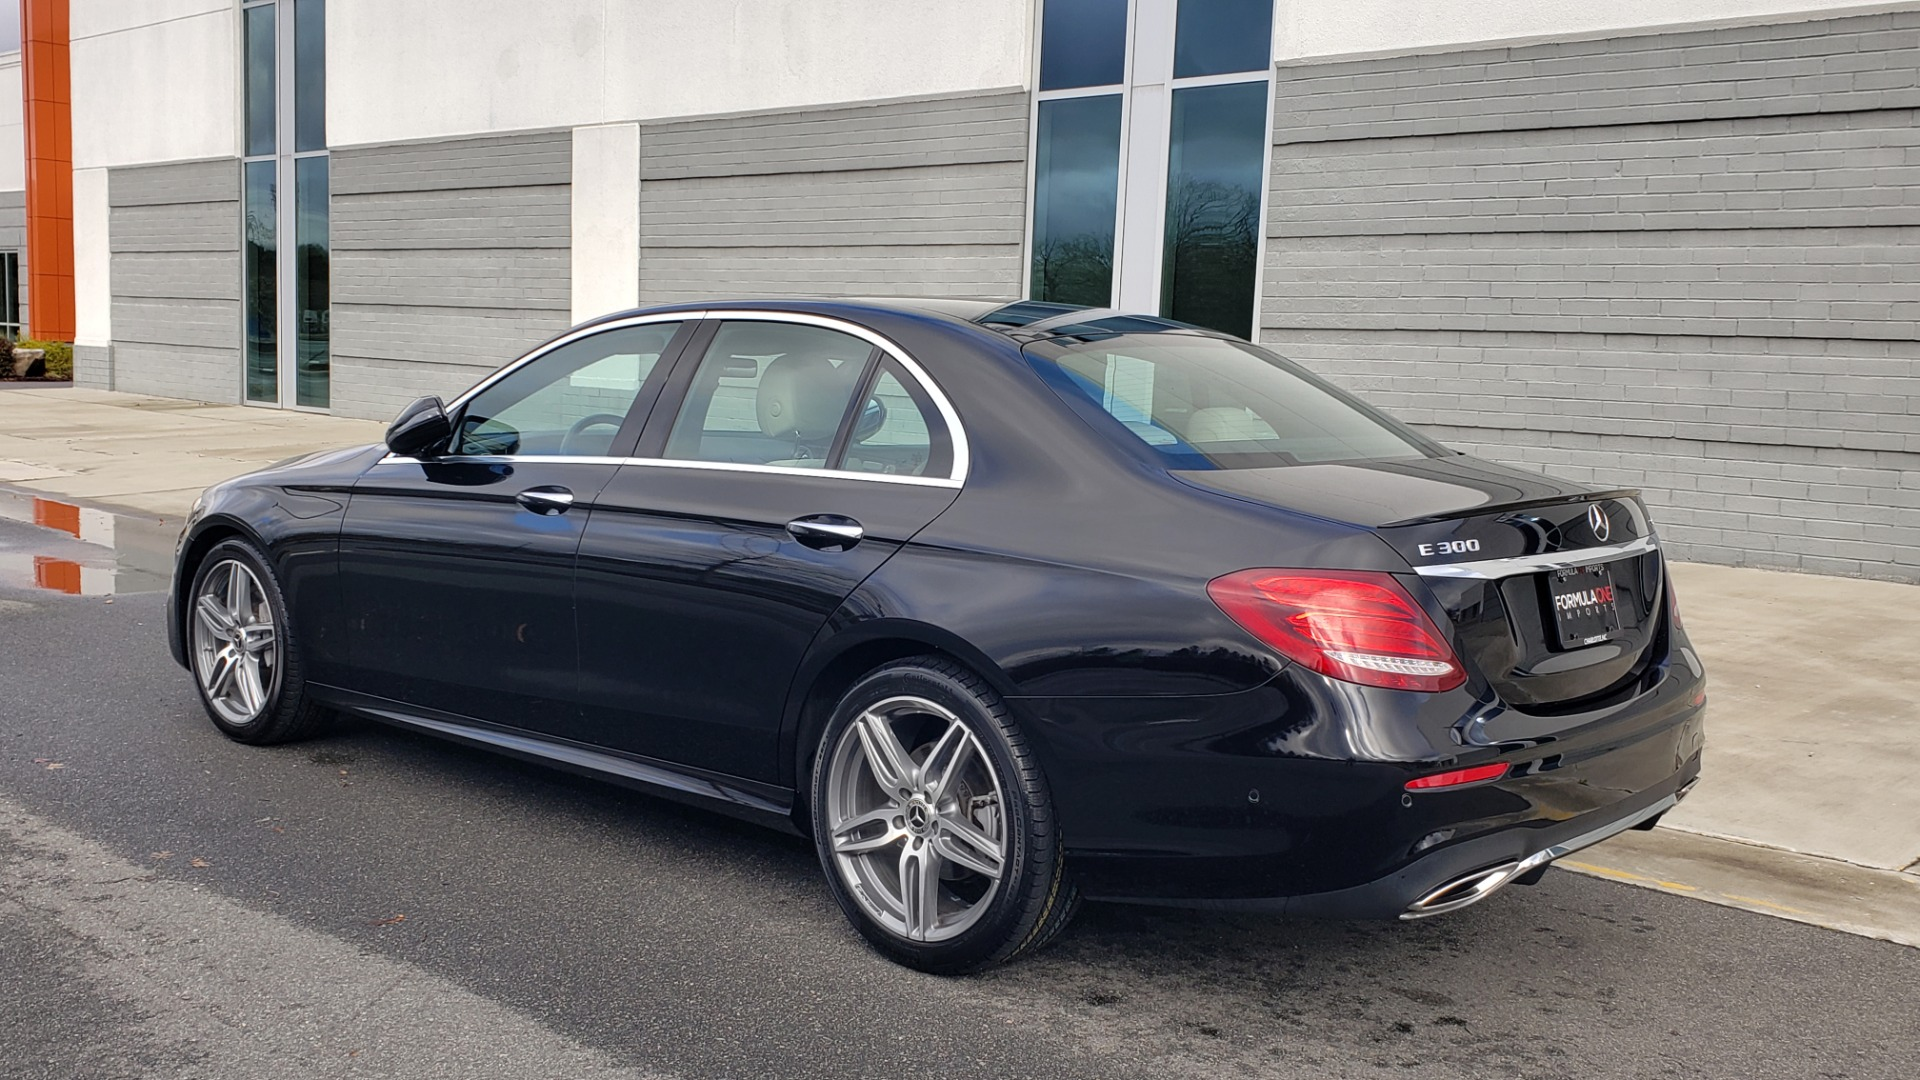 Used 2018 Mercedes-Benz E-CLASS E 300 PREM PKG 2 / NAV / PANO-ROOF / WARMTH & COMFORT PKG for sale $35,295 at Formula Imports in Charlotte NC 28227 8